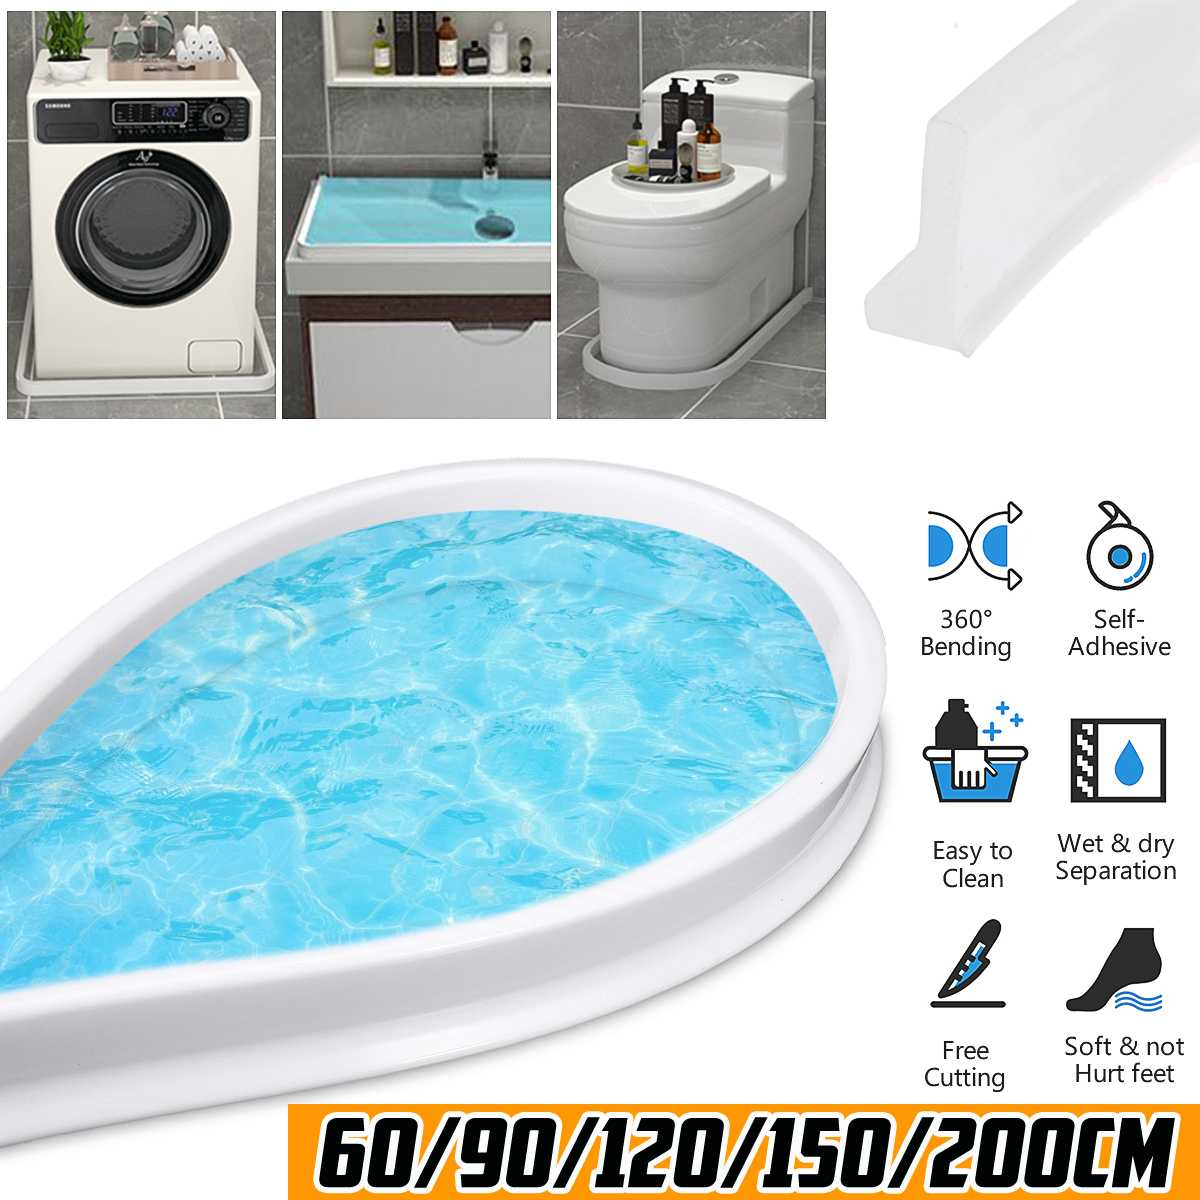 150cm Bathroom Water Stopper Flood Barrier Rubber Dam Silicon Water Blocker Dry and Wet Separation Home Improve